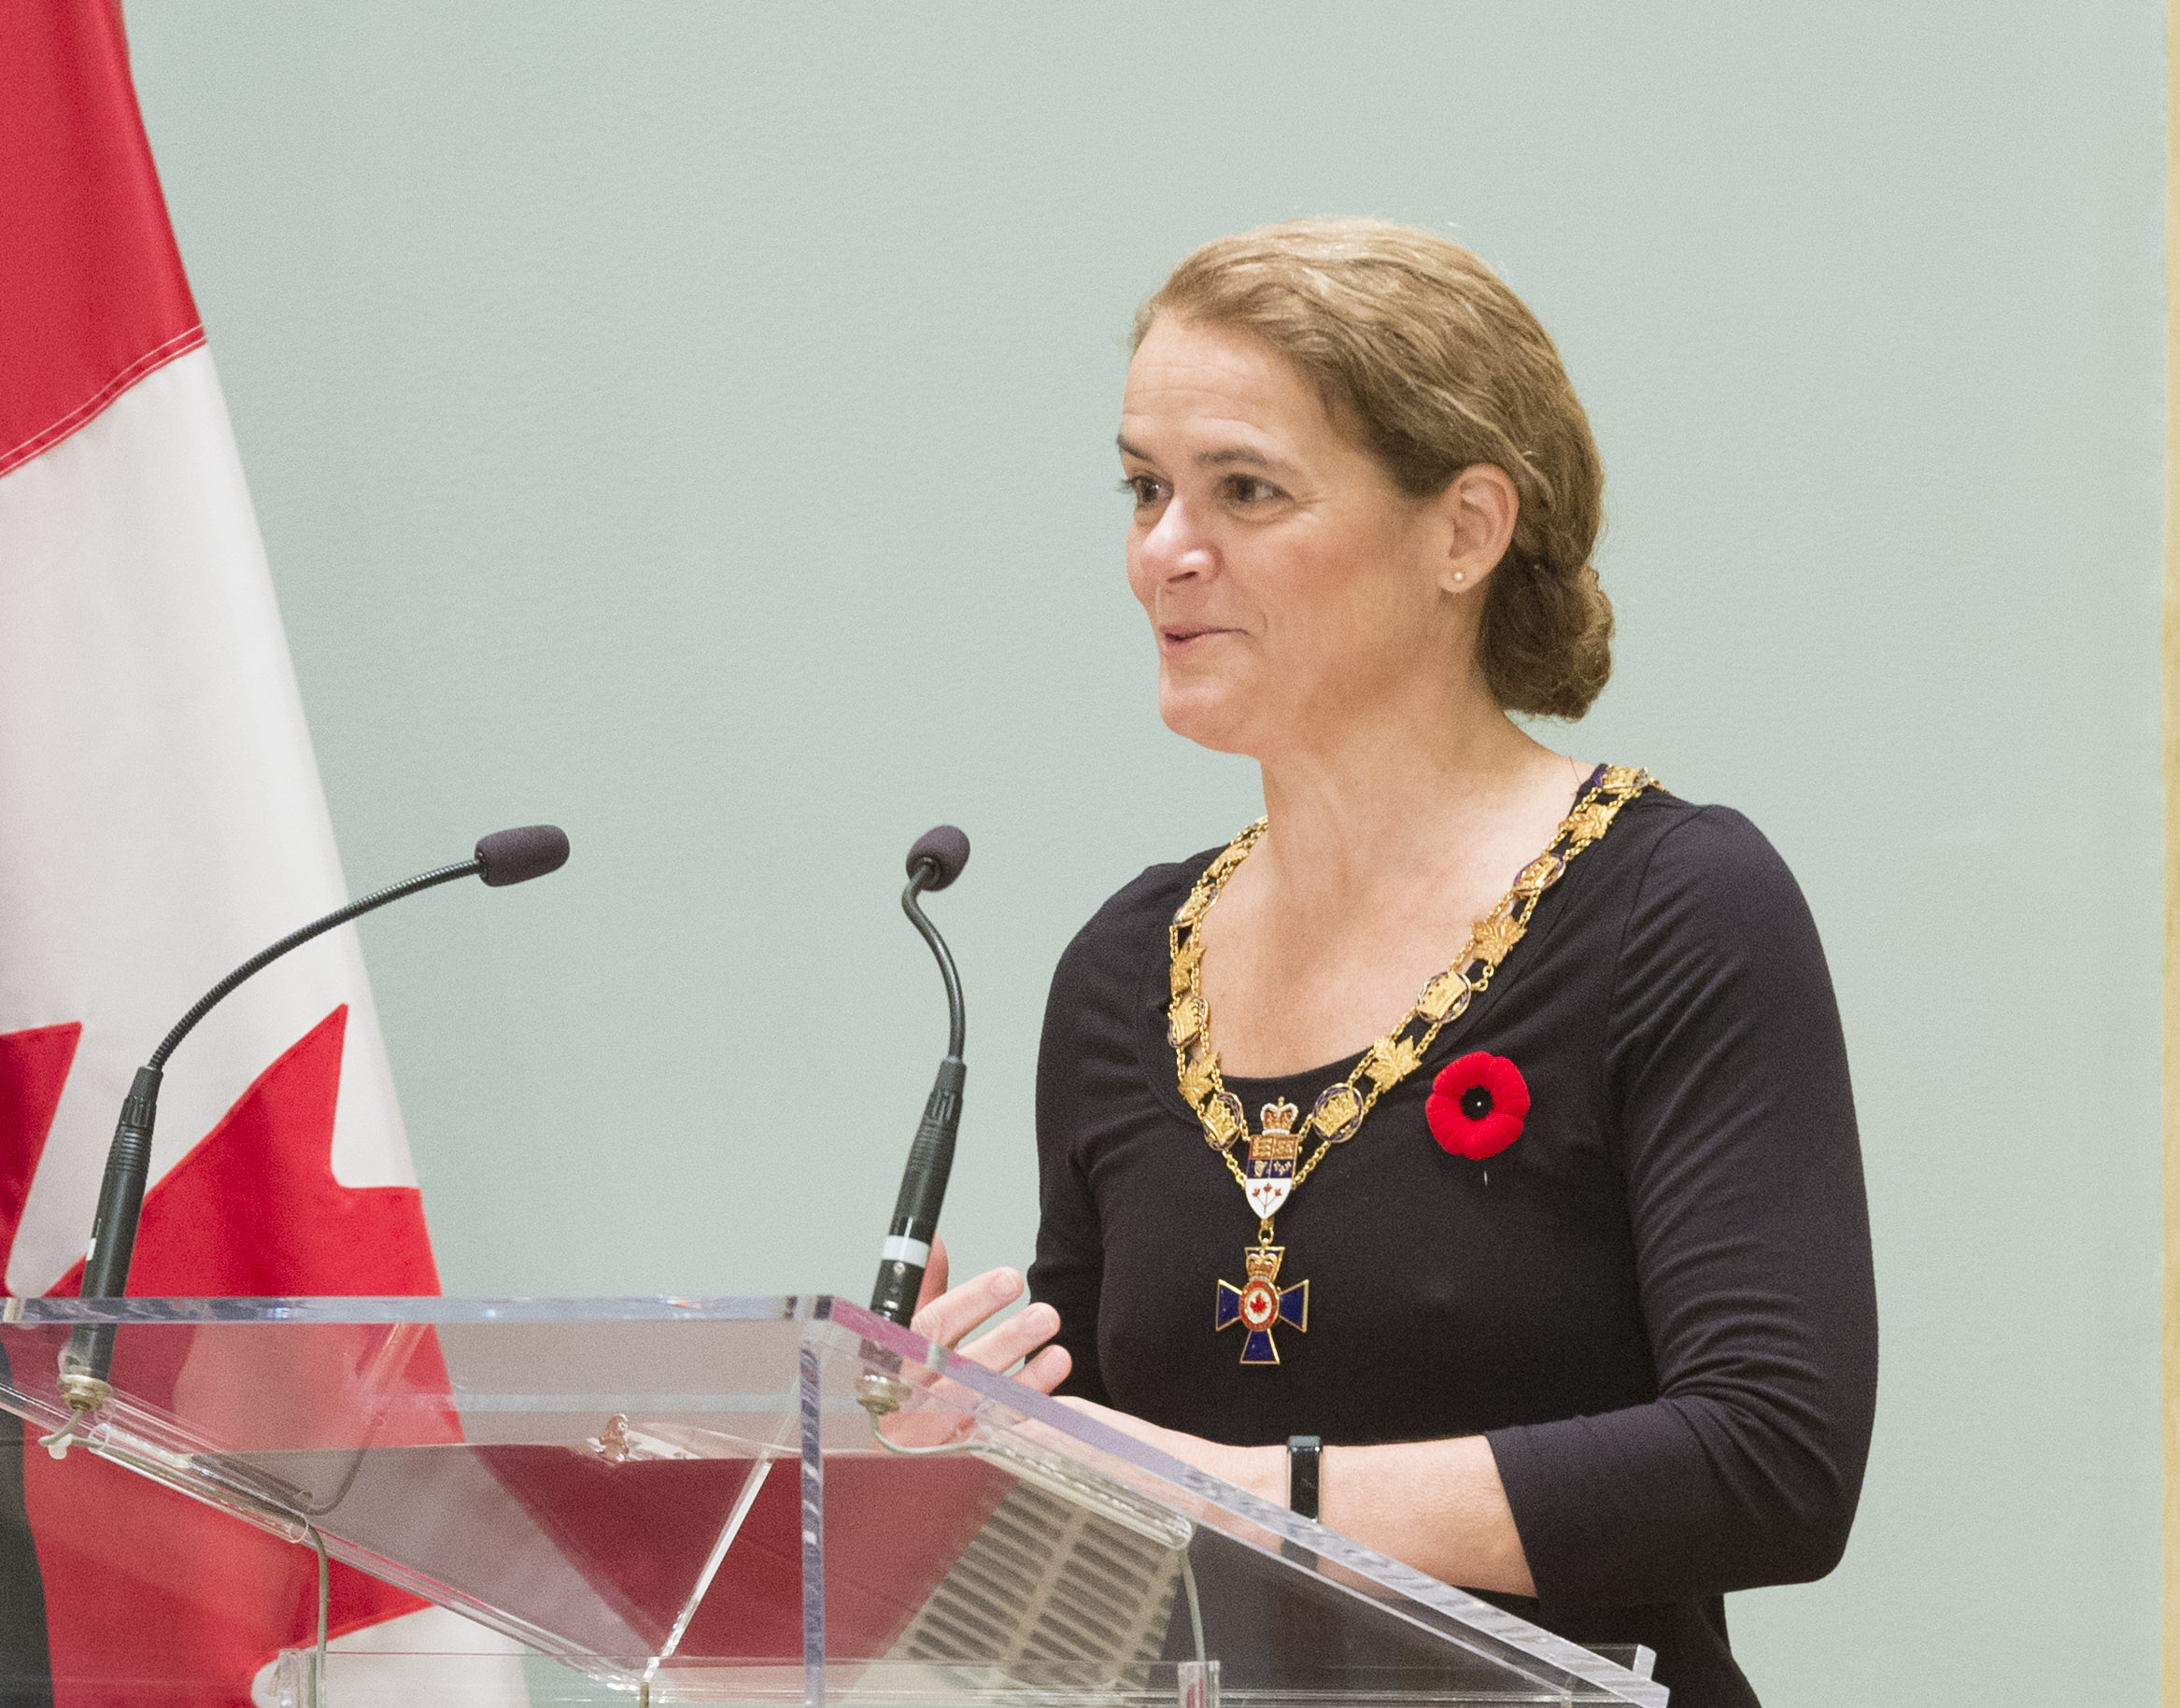 Governor General and Commander-in-Chief of Canada Julie Payette addresses recipients of the Order of Military Merit and their guests as the induction ceremony begins on November 10, 2017, at Rideau Hall in Ottawa. PHOTO: Sergeant Johanie Maheu, Rideau Hall © OSGG, GG05-2017-0395-008